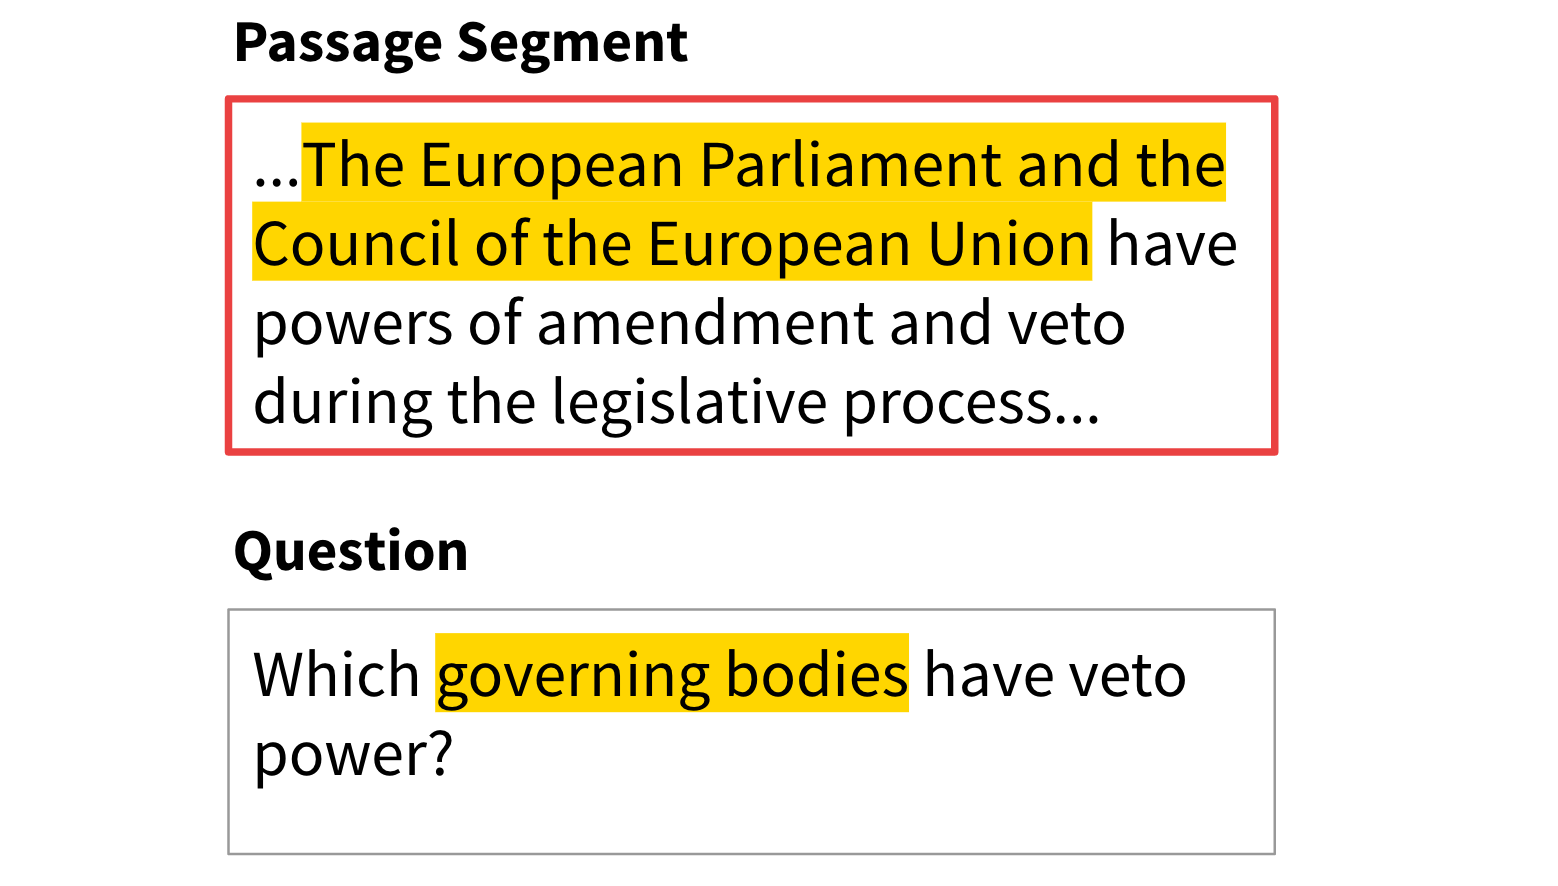 To answer this question, QA systems have to infer that the European Parliament and the Council of the European Union are government bodies. Such questions are difficult to answer because they go beyond the passage.